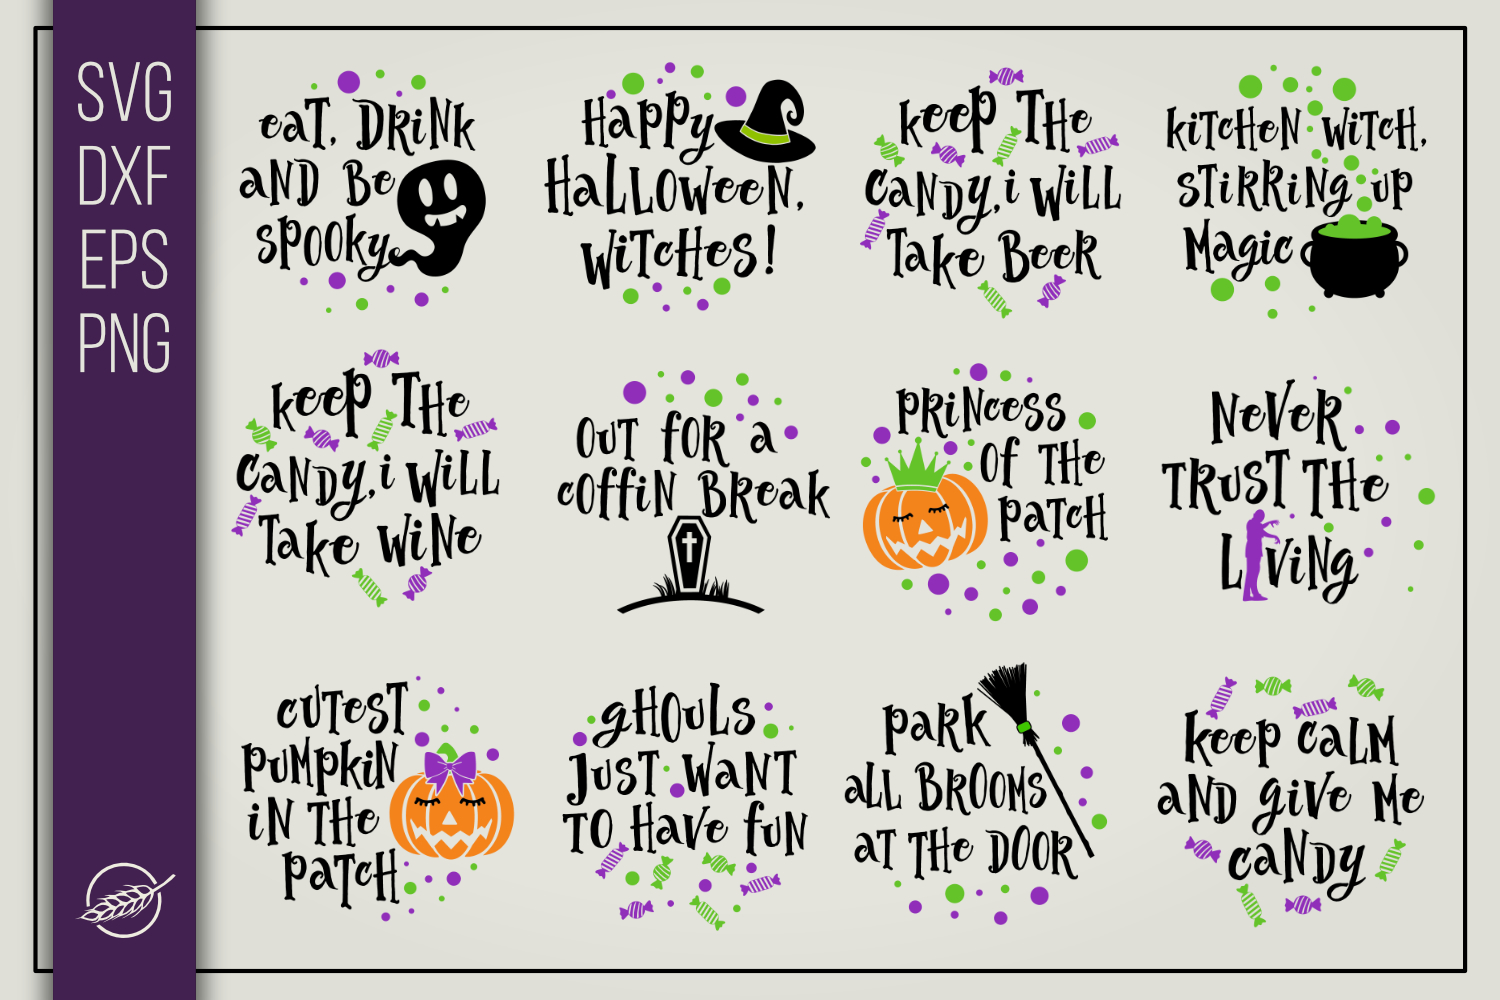 Funny Halloween Quotes SVG File